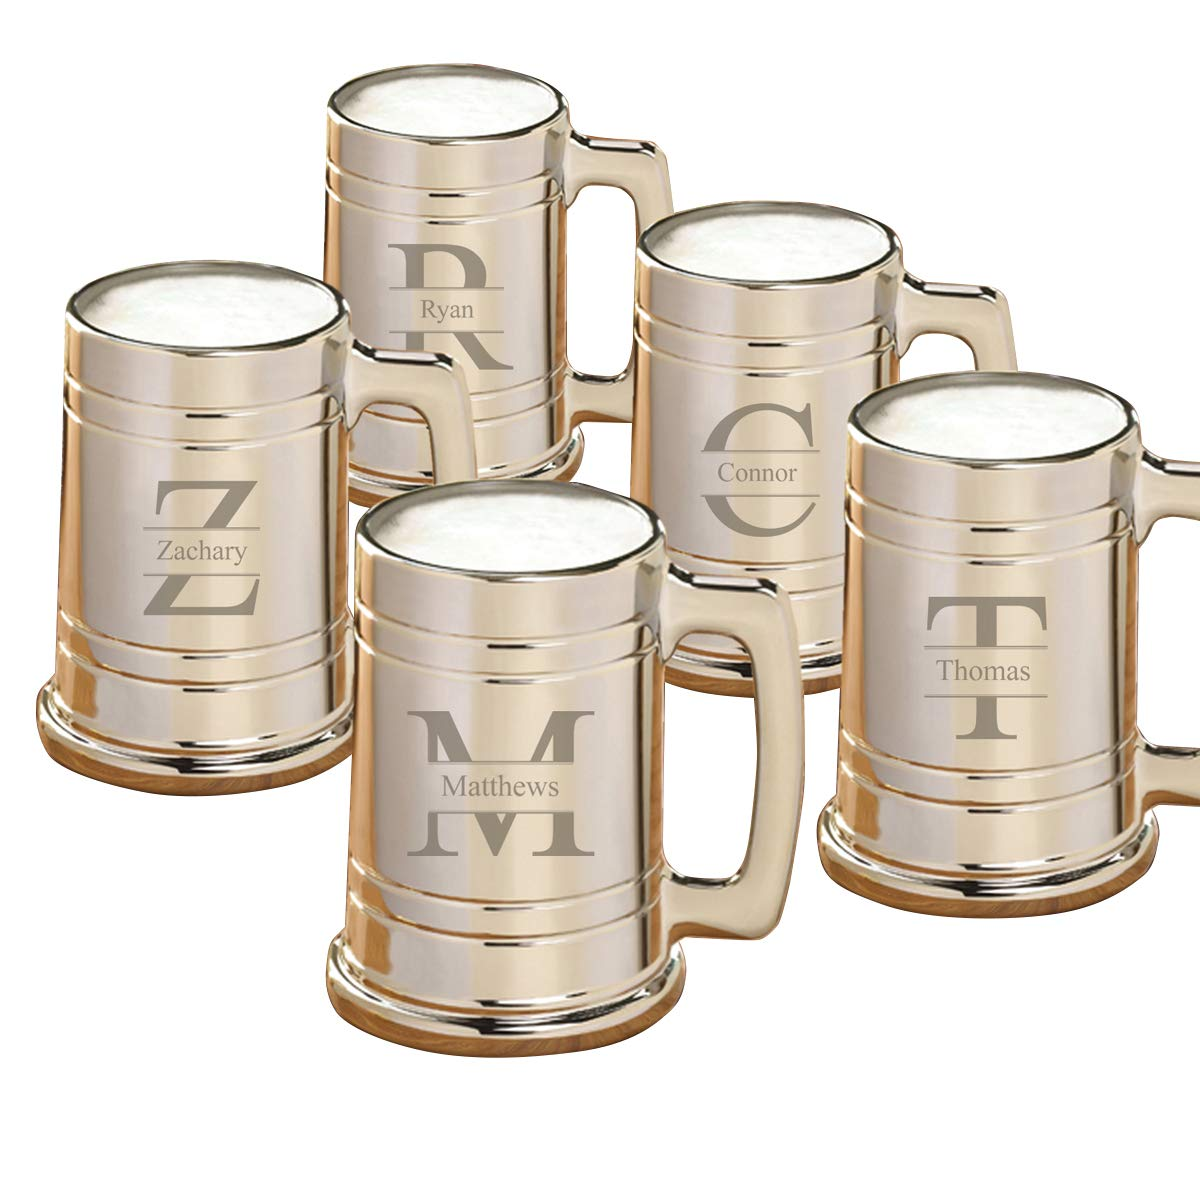 Personalized Gunmetal Beer Mugs - Personalized Beer Mugs - Stamped Monogram - Set of 5